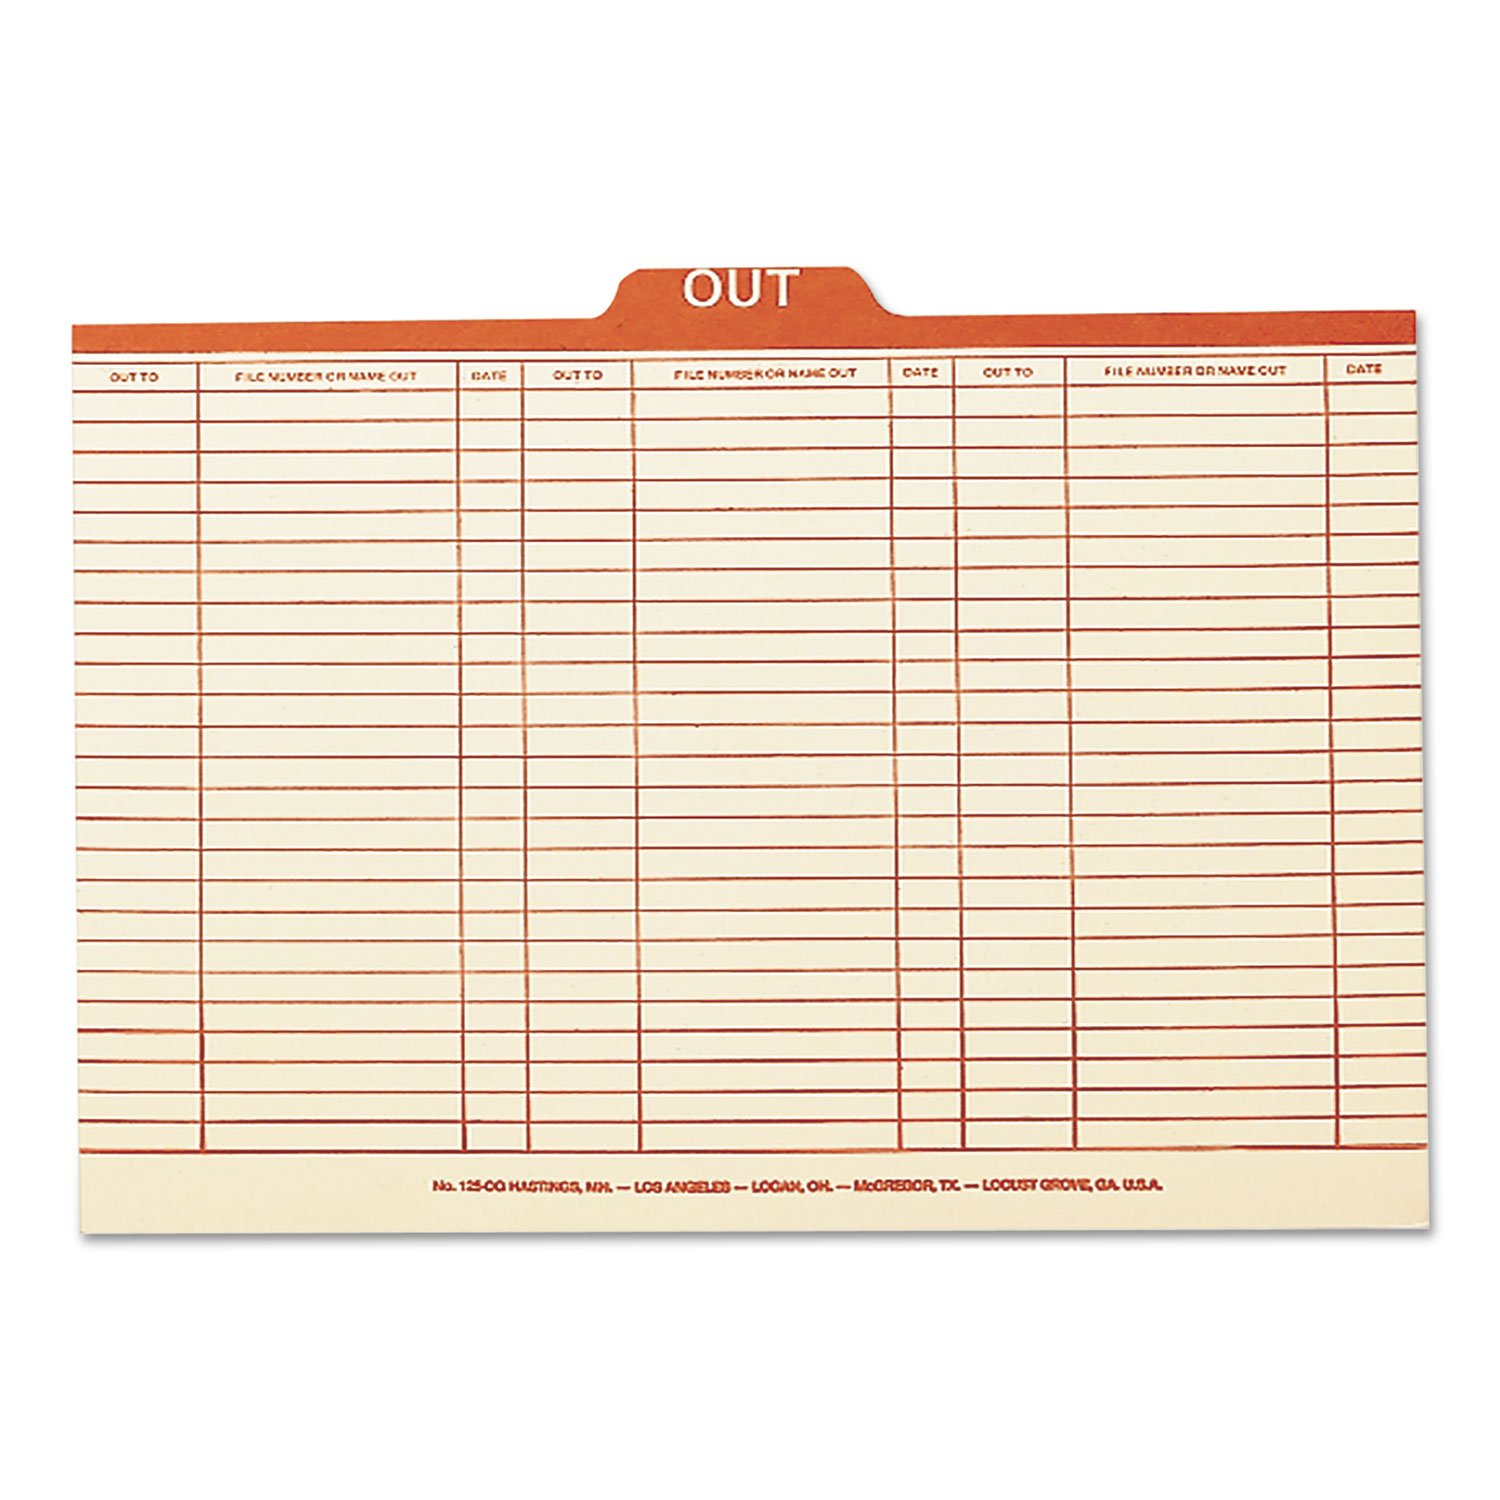 Smead 53910 Charge-Out Record Guides 1/5 Red''OUT'' Tab Manila Legal 100/Box by Smead